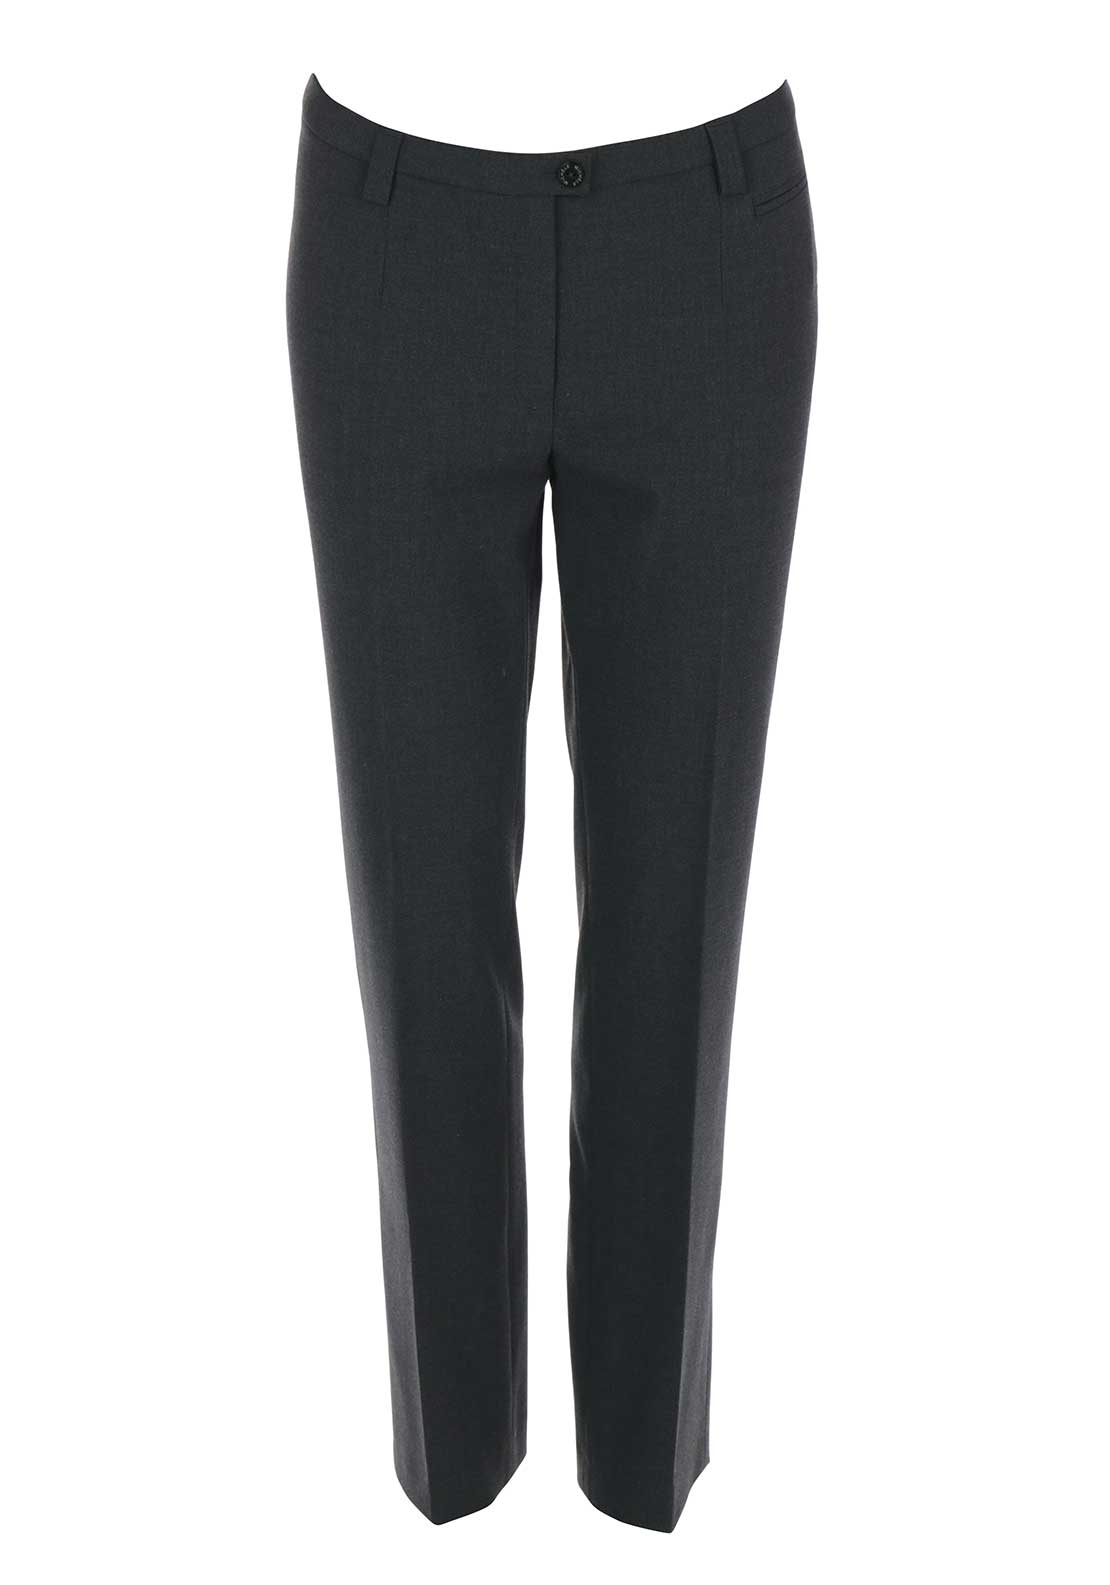 Michele Slim Leg Regular Length Trousers, Dark Grey